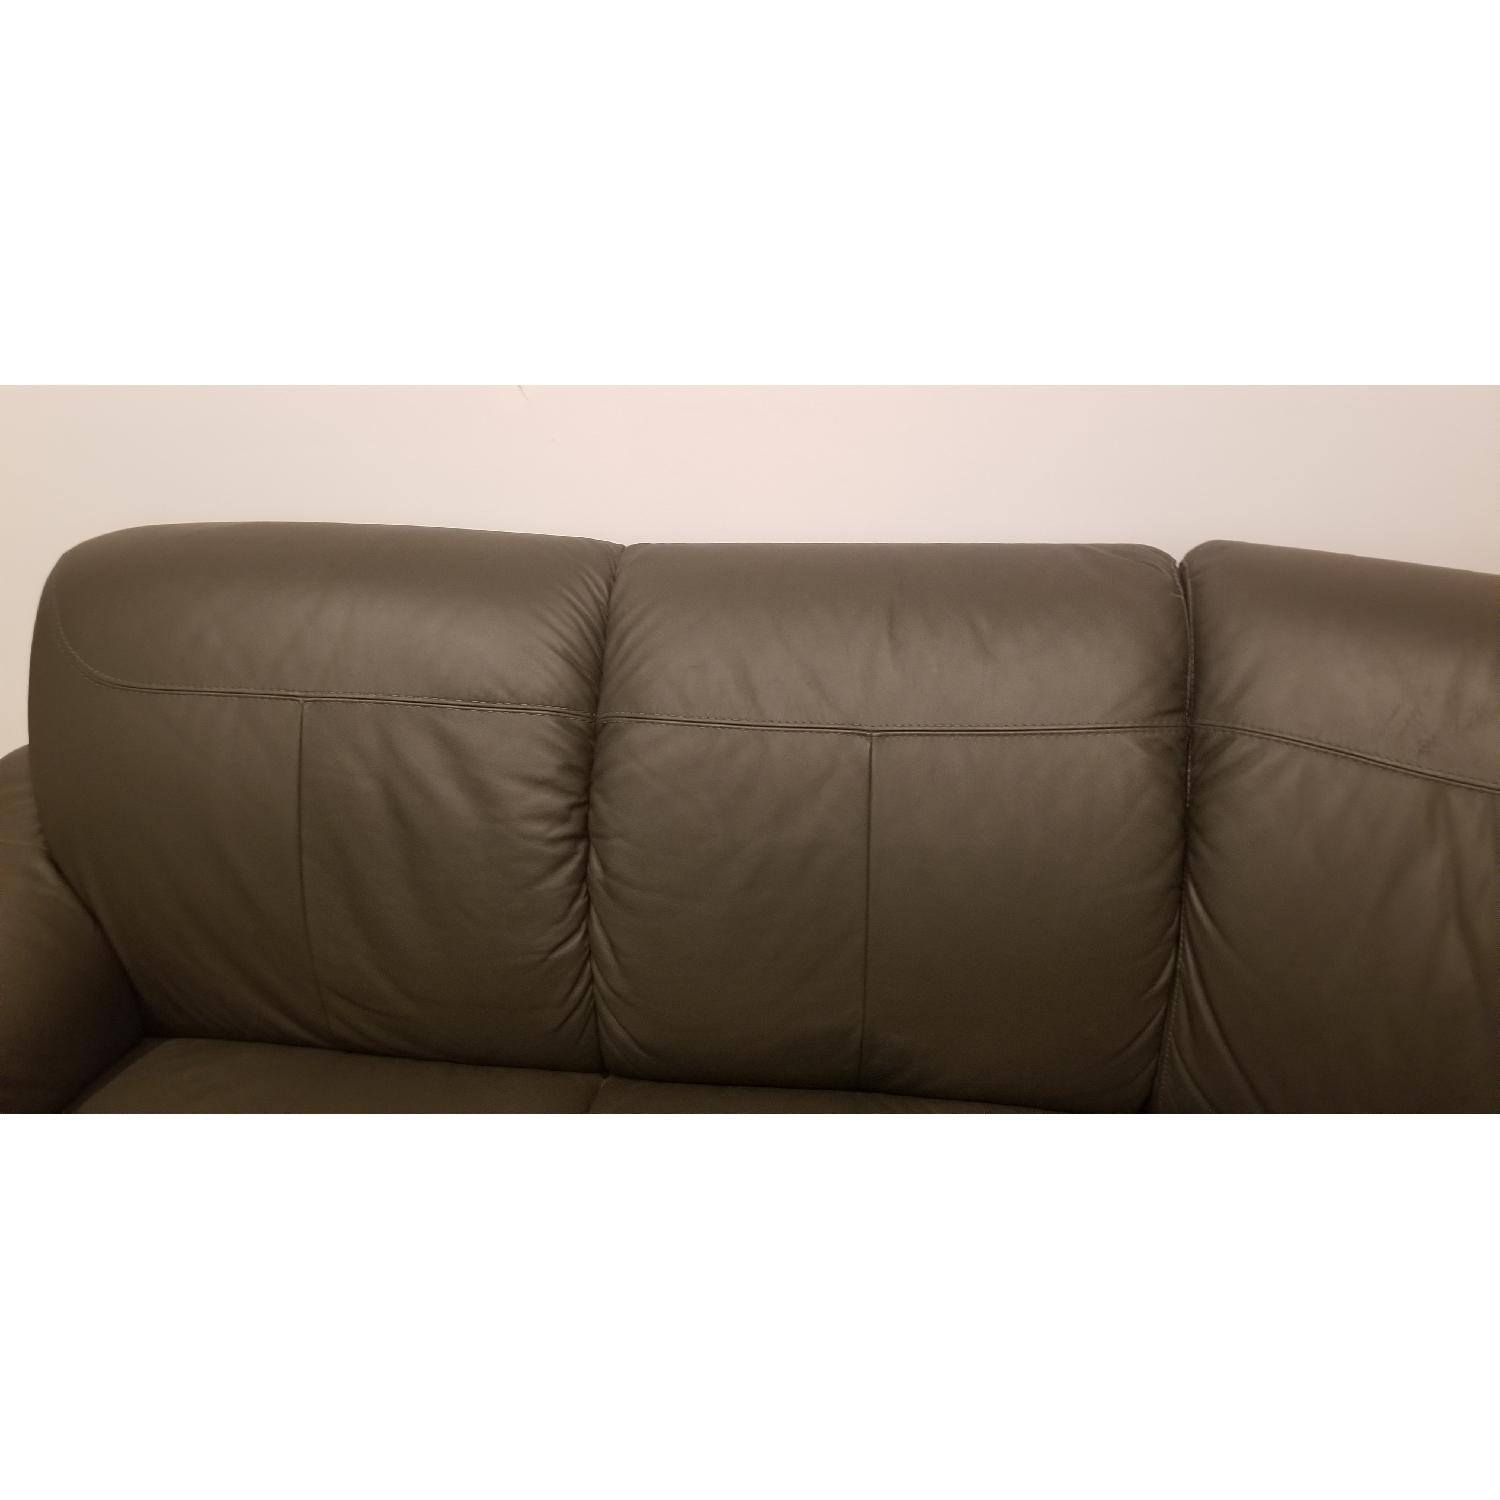 Ikea Timsfors Faux Leather Sectional Sofa - image-5